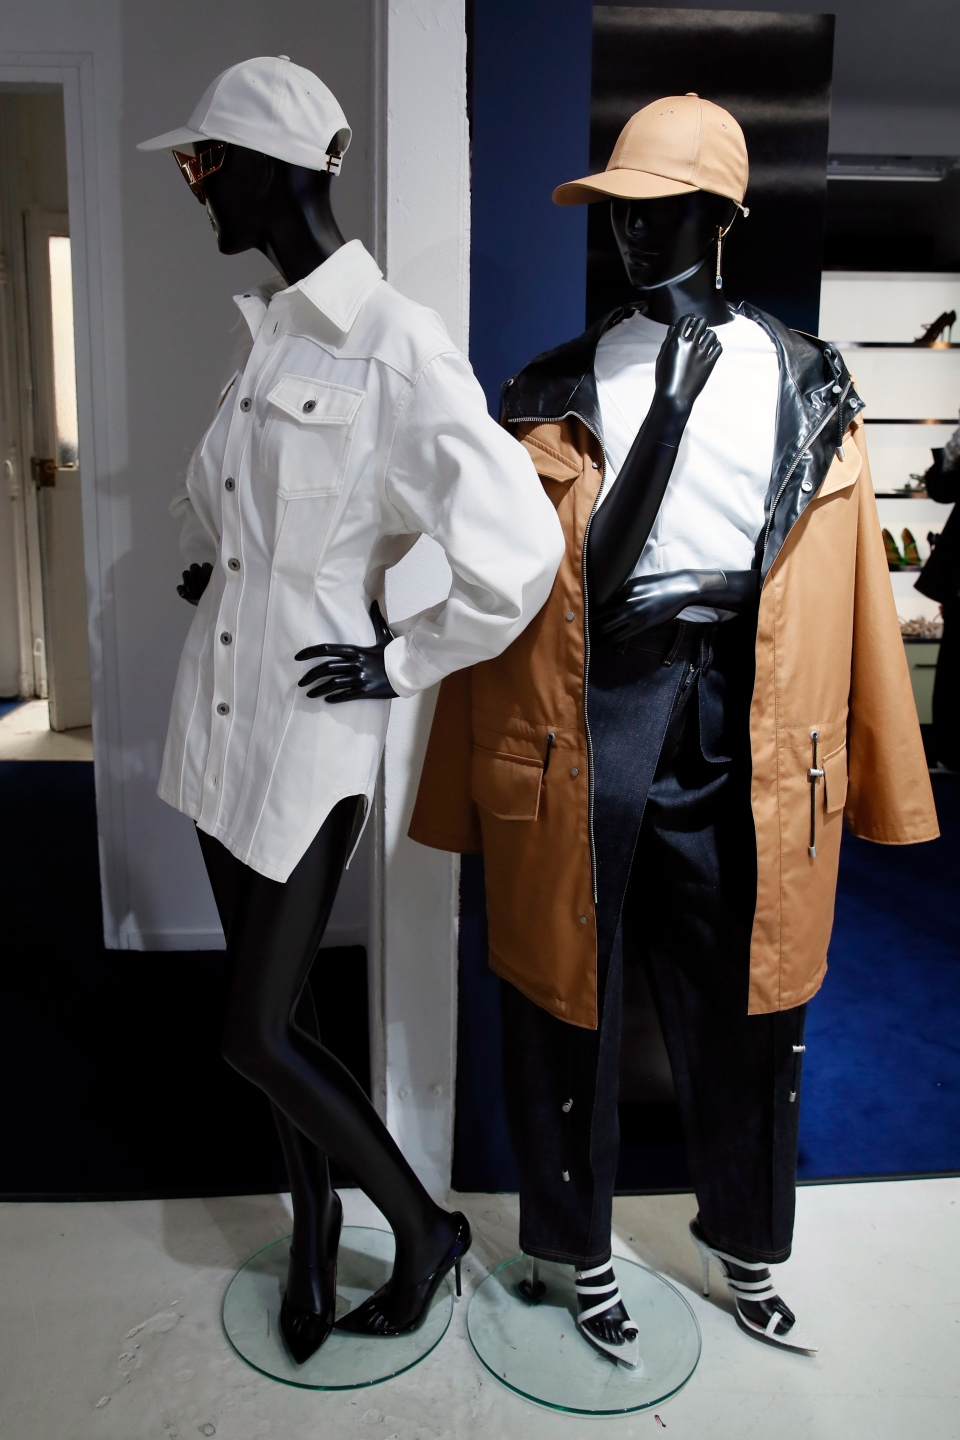 Designs are displayed as Rihanna unveils her first fashion designs for Fenty at a pop-up store in Paris, France, Wednesday, May 22, 2019. (AP Photo/Francois Mori)